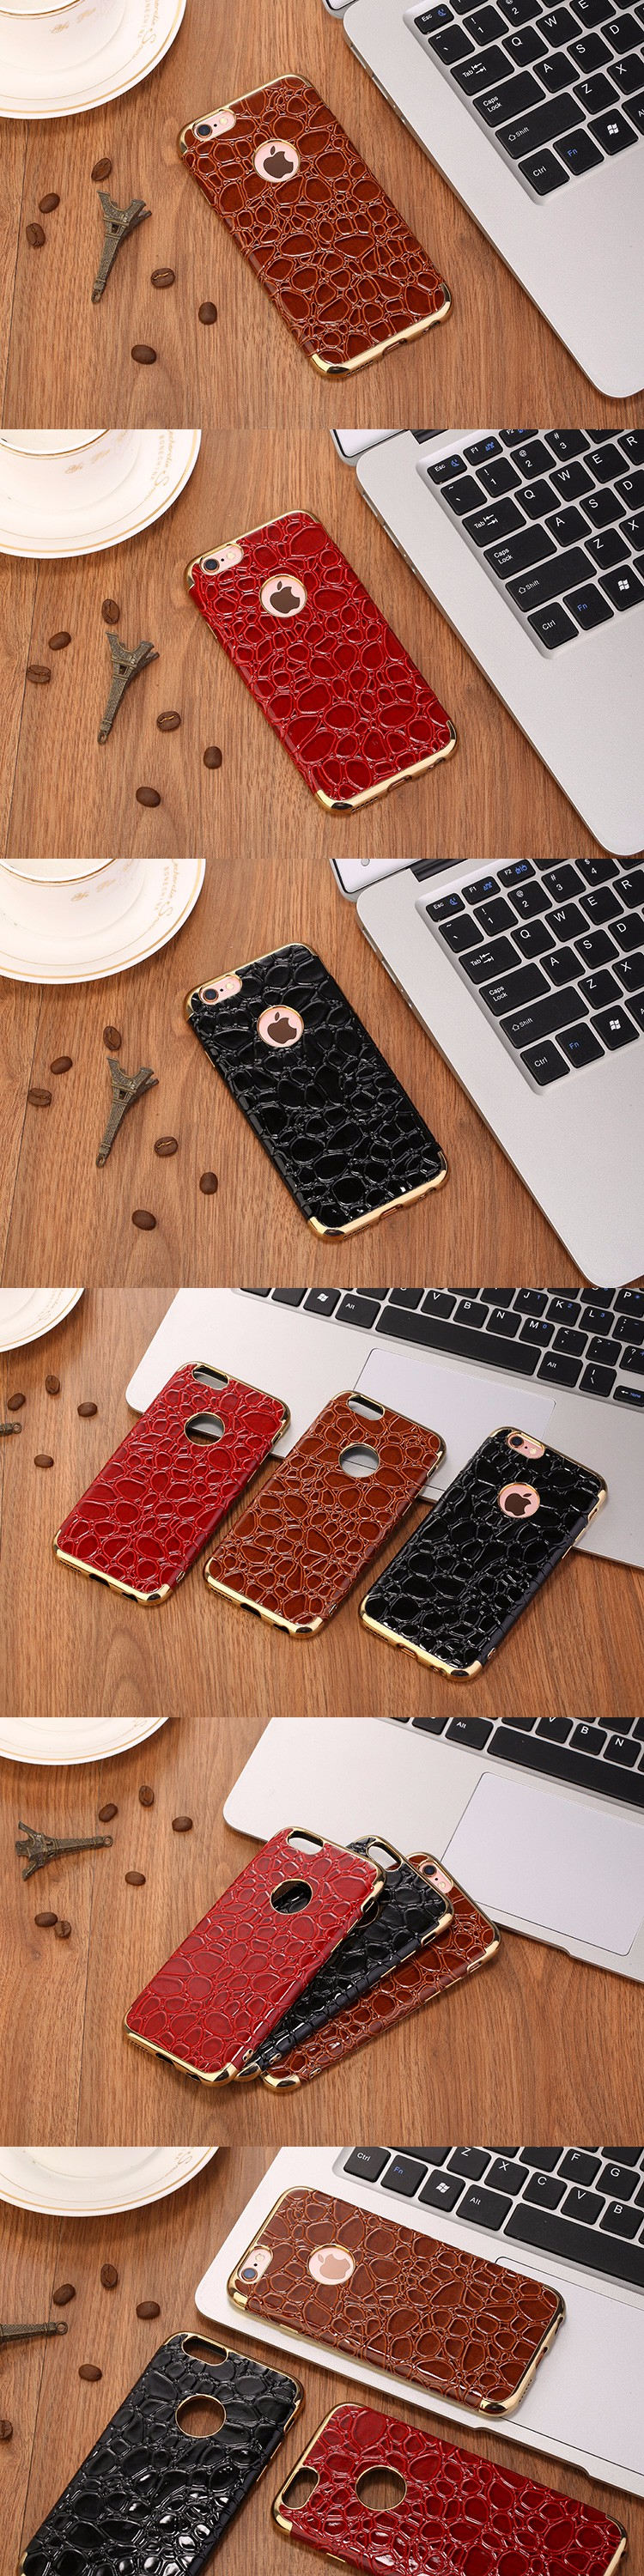 Case For IPhone 6 Cases Cover For IPhone 6S Soft TPU Luxury Anti-knock Shell